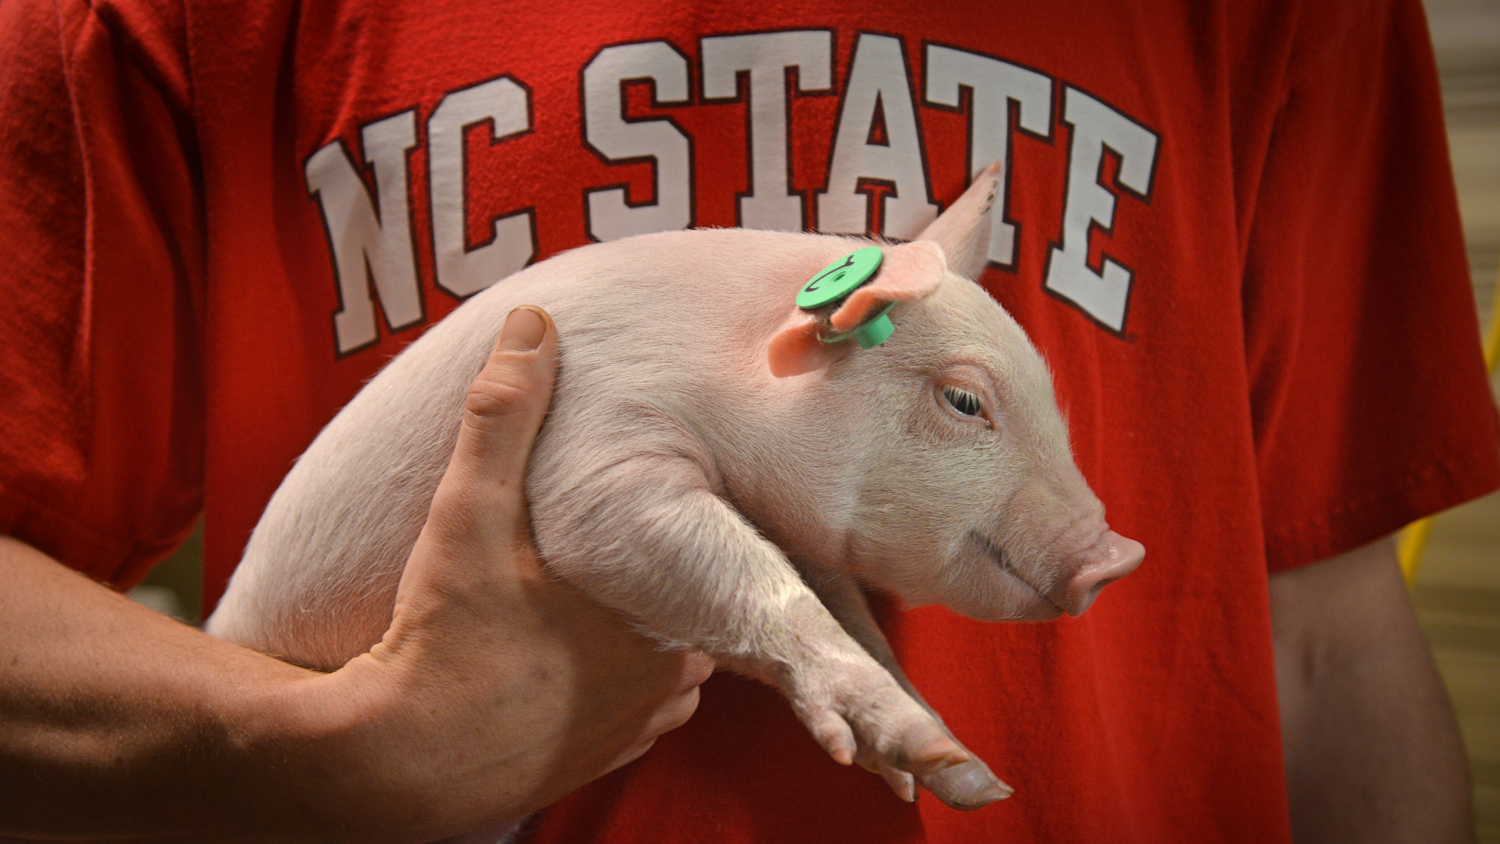 Closeup of piglet held by NCState student